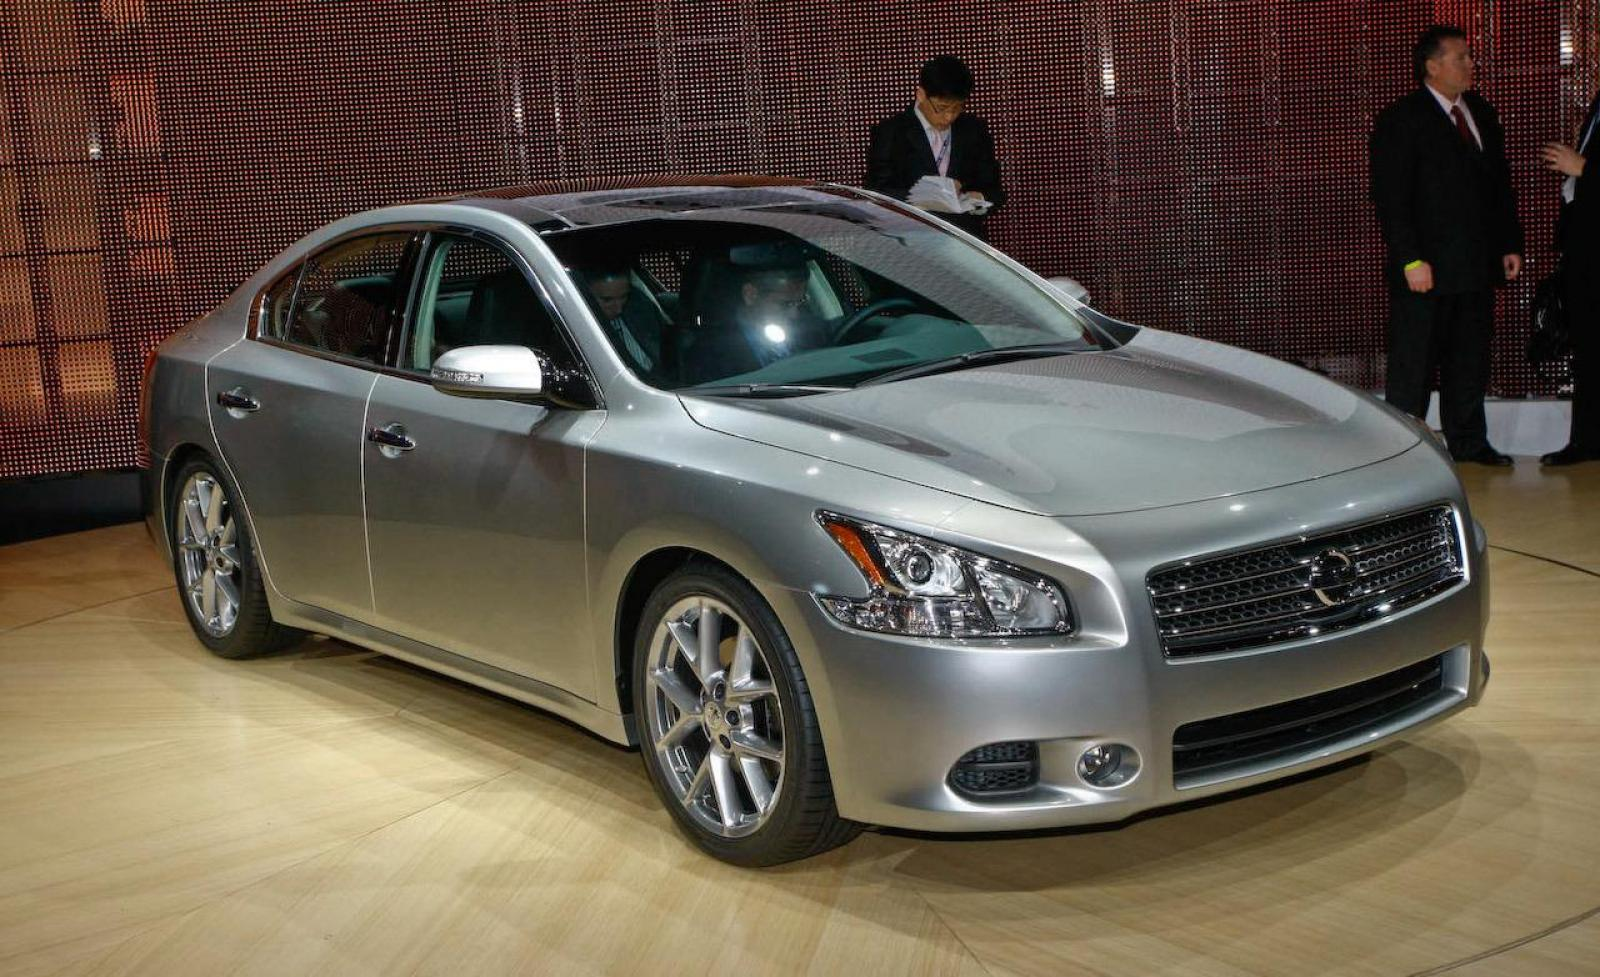 2009 nissan maxima information and photos zombiedrive. Black Bedroom Furniture Sets. Home Design Ideas